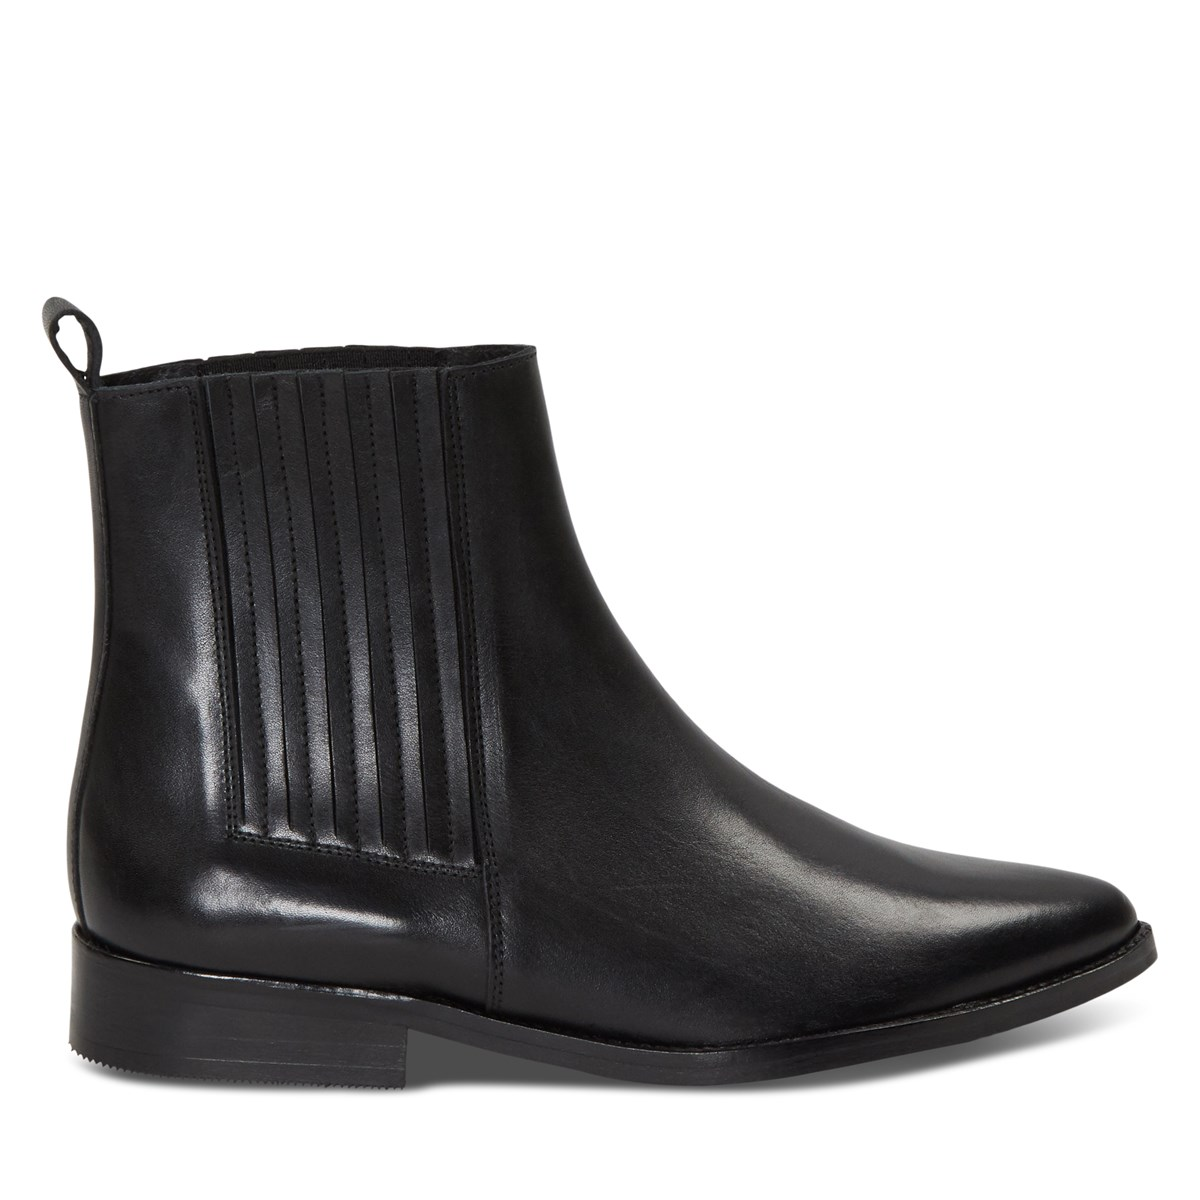 Women's Blake Ankle Boots in Black